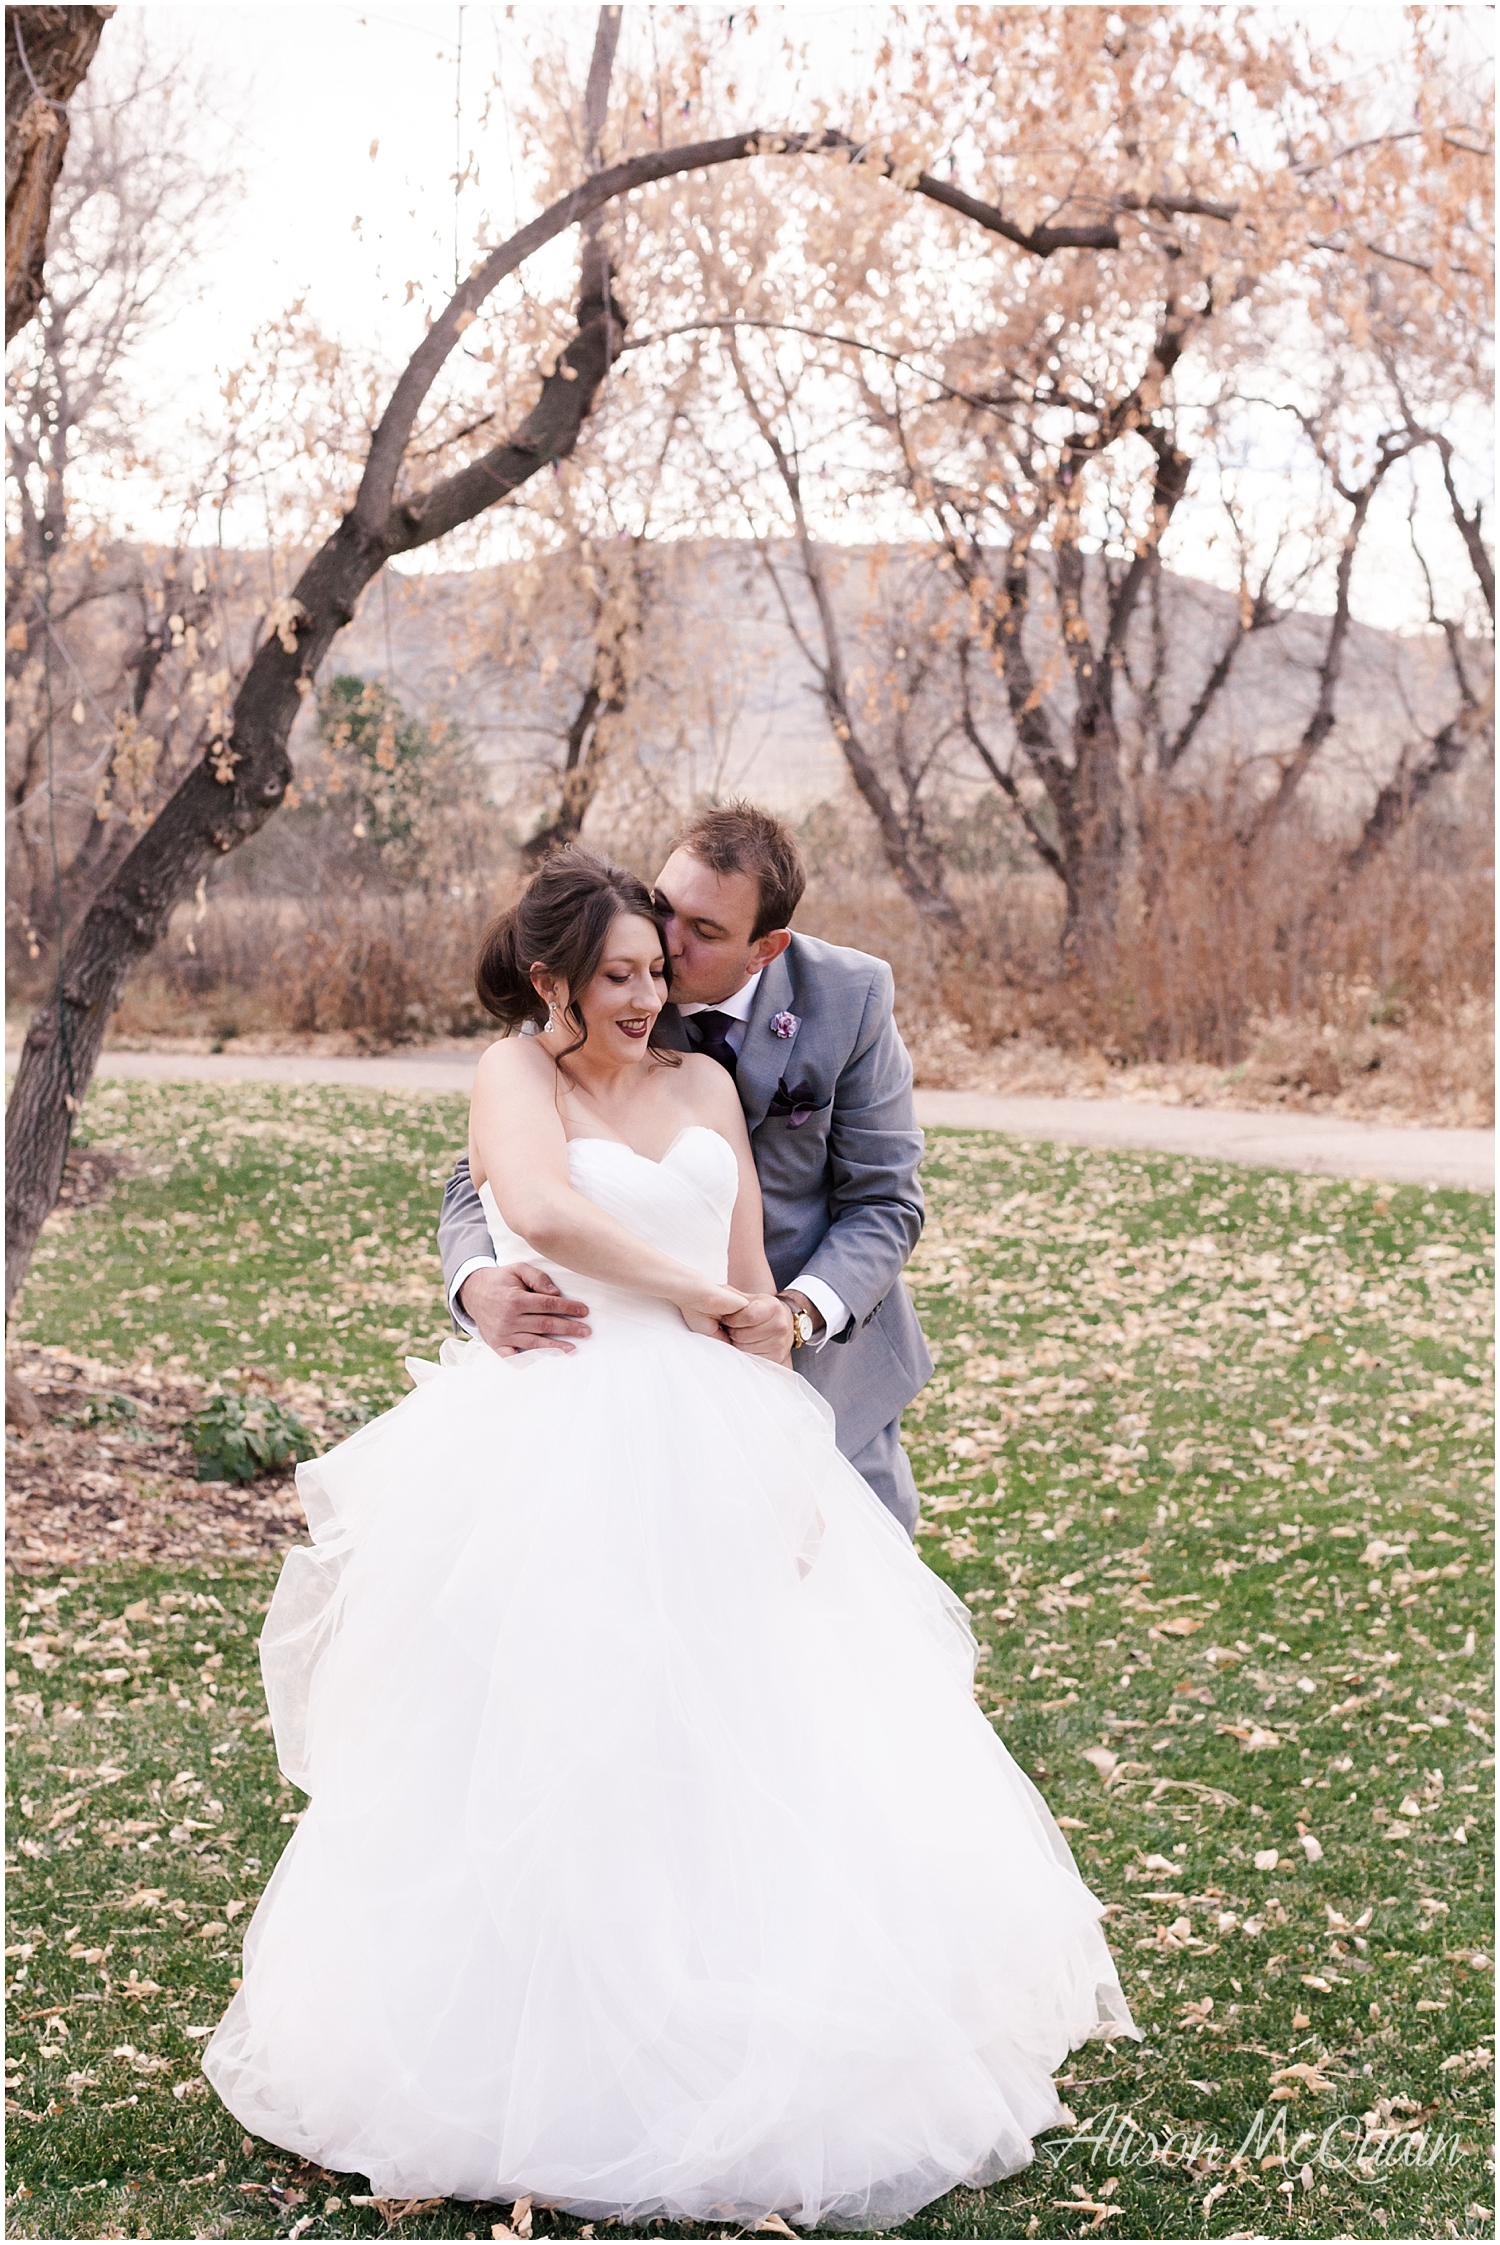 Zako_Wedding_ChatfieldFarm_Denver_Fall_2018_AlisonMcQuainPhotography_0026.jpg